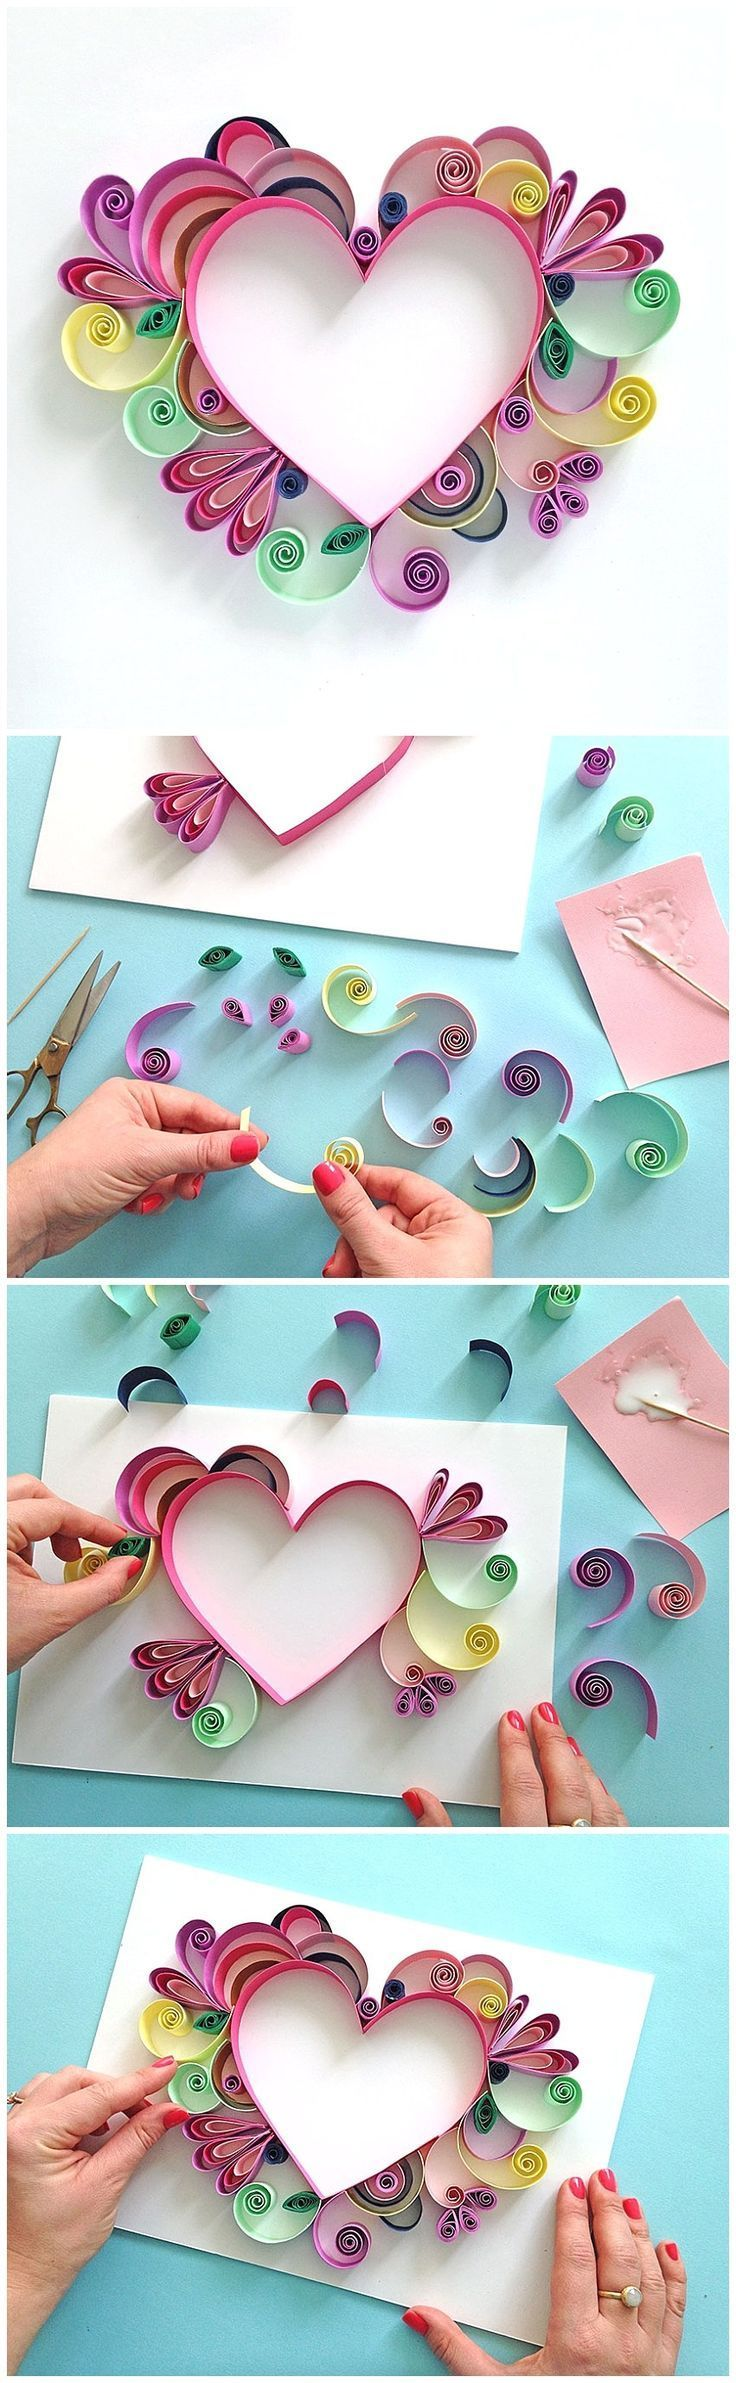 Learn How to Quill a darling Heart Shaped Mother's Day Paper Craft Gift Idea via Paper Chase - Moms and Grandmas will love these pretty handmade works of art! The BEST Easy DIY Mother's Day Gifts and Treats Ideas - Holiday Craft Activity Projects, Free P